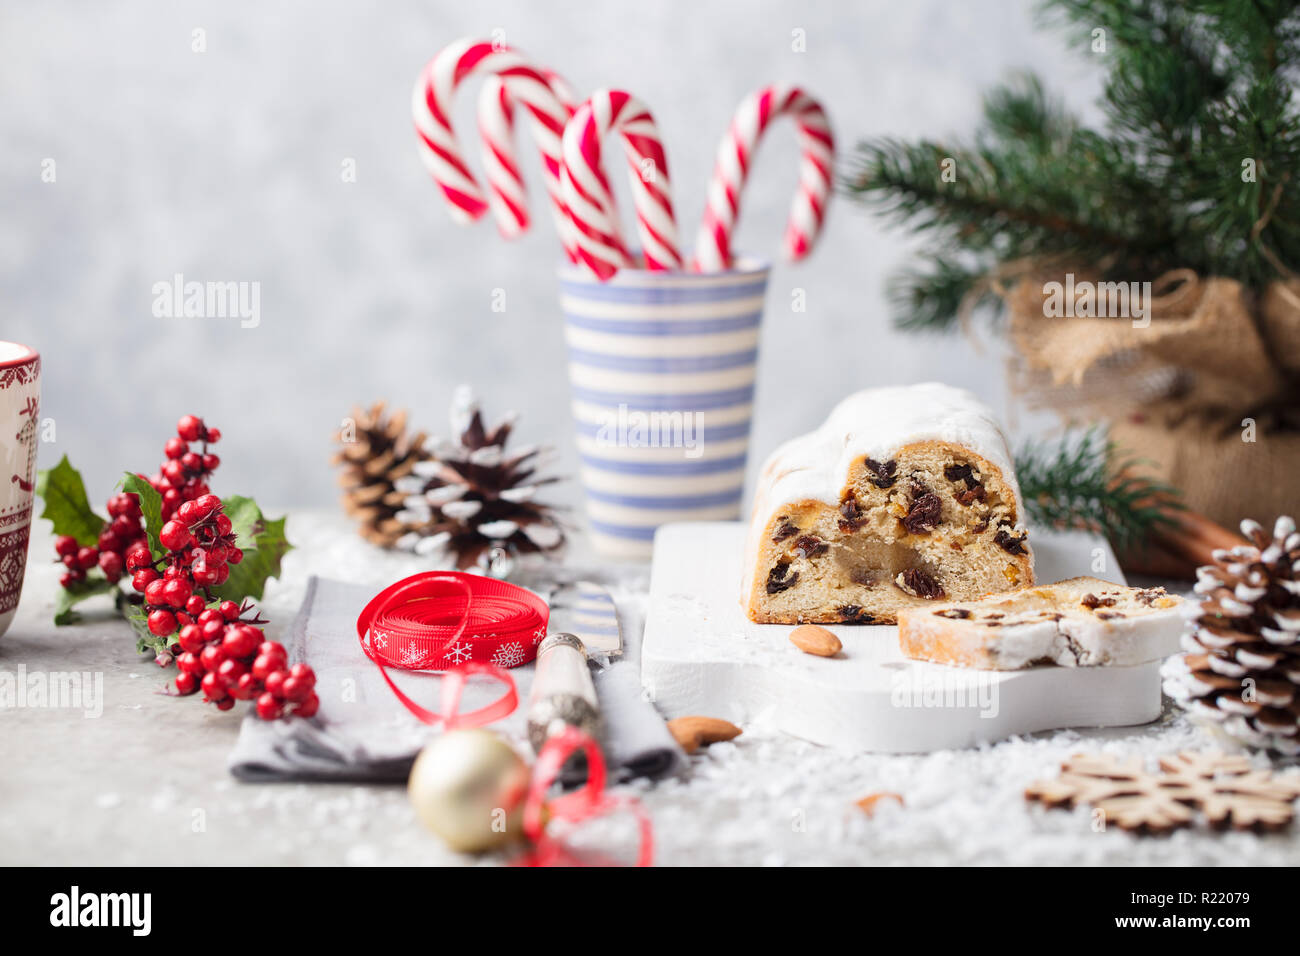 Christmas stollen cake with icing sugar, marzipan and raisins. Traditional Dresdner christ pastry. Stock Photo